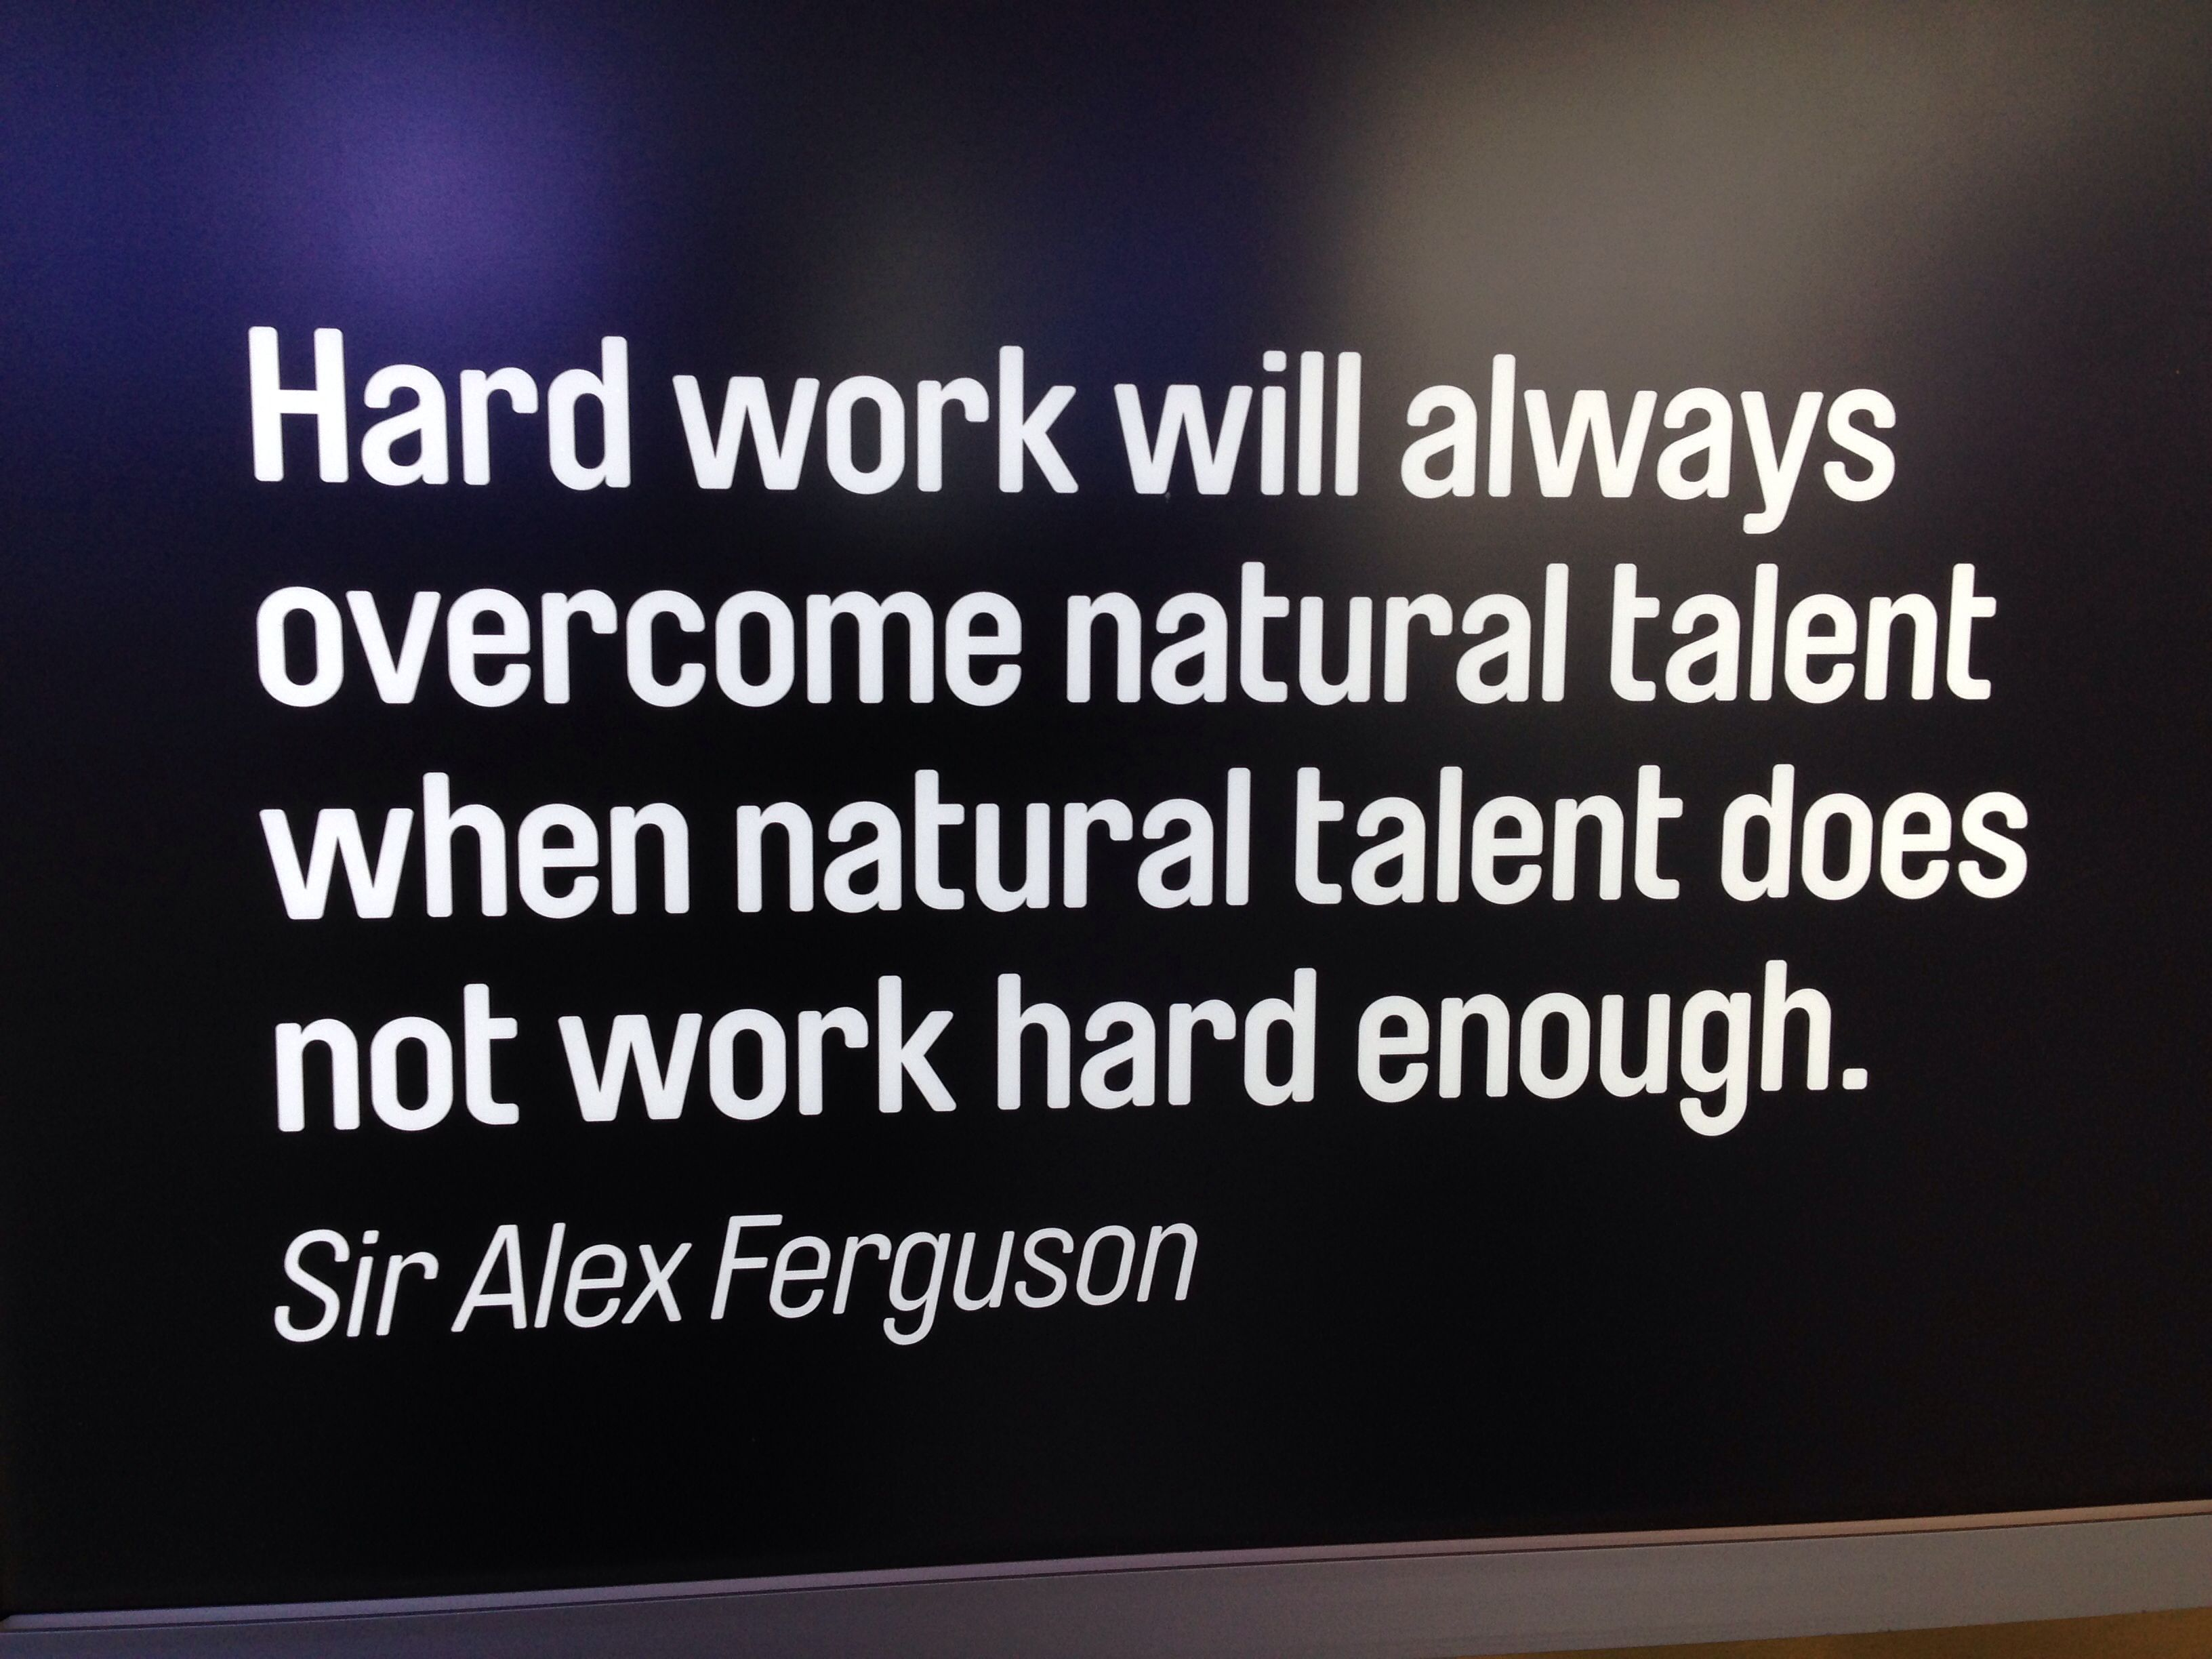 Powerful quotes Powerful quotes, Work hard, Quotes